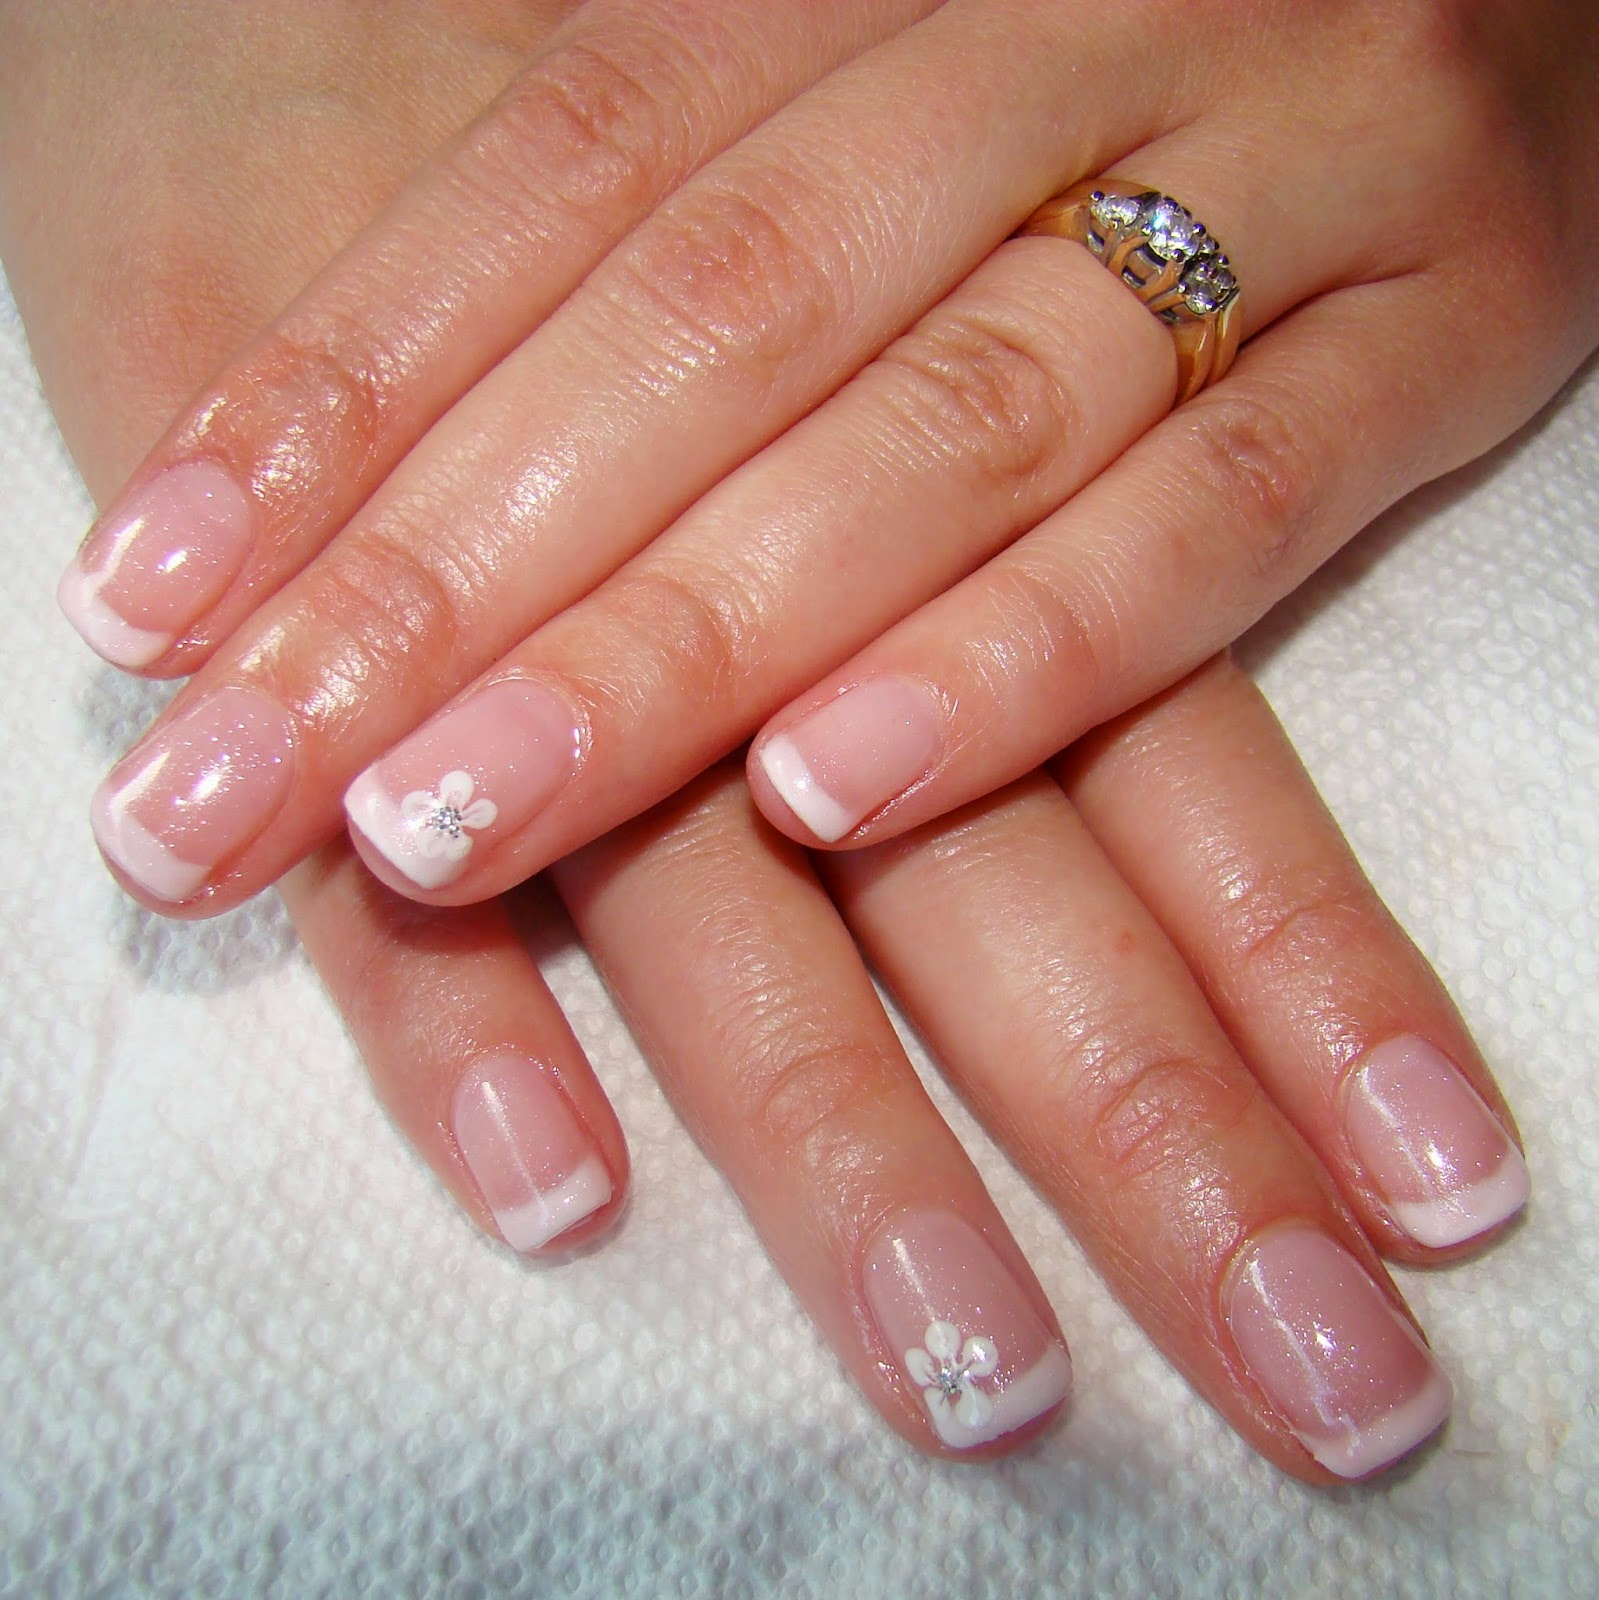 Pretty Nails and Tea: French Manicure using Fingerpaints Soak-Off Gel